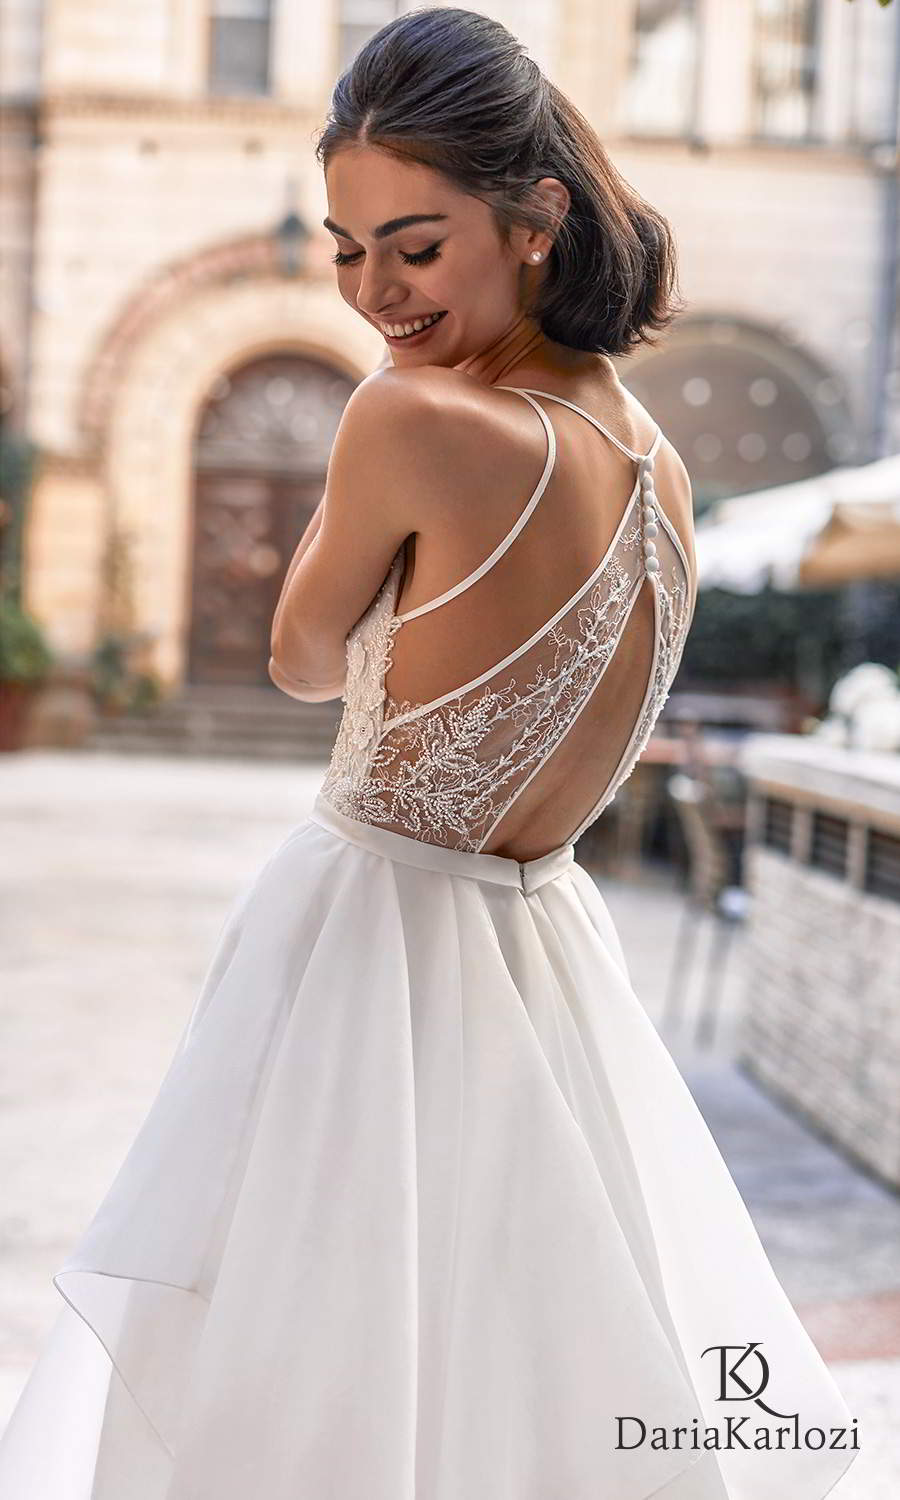 daria karlozi 2021 graceful dream bridal sleeveless thin straps sweetheart neckline embellished bodice clean bodice a line ball gown wedding dress chapel train sheer back (brilliance) zbv